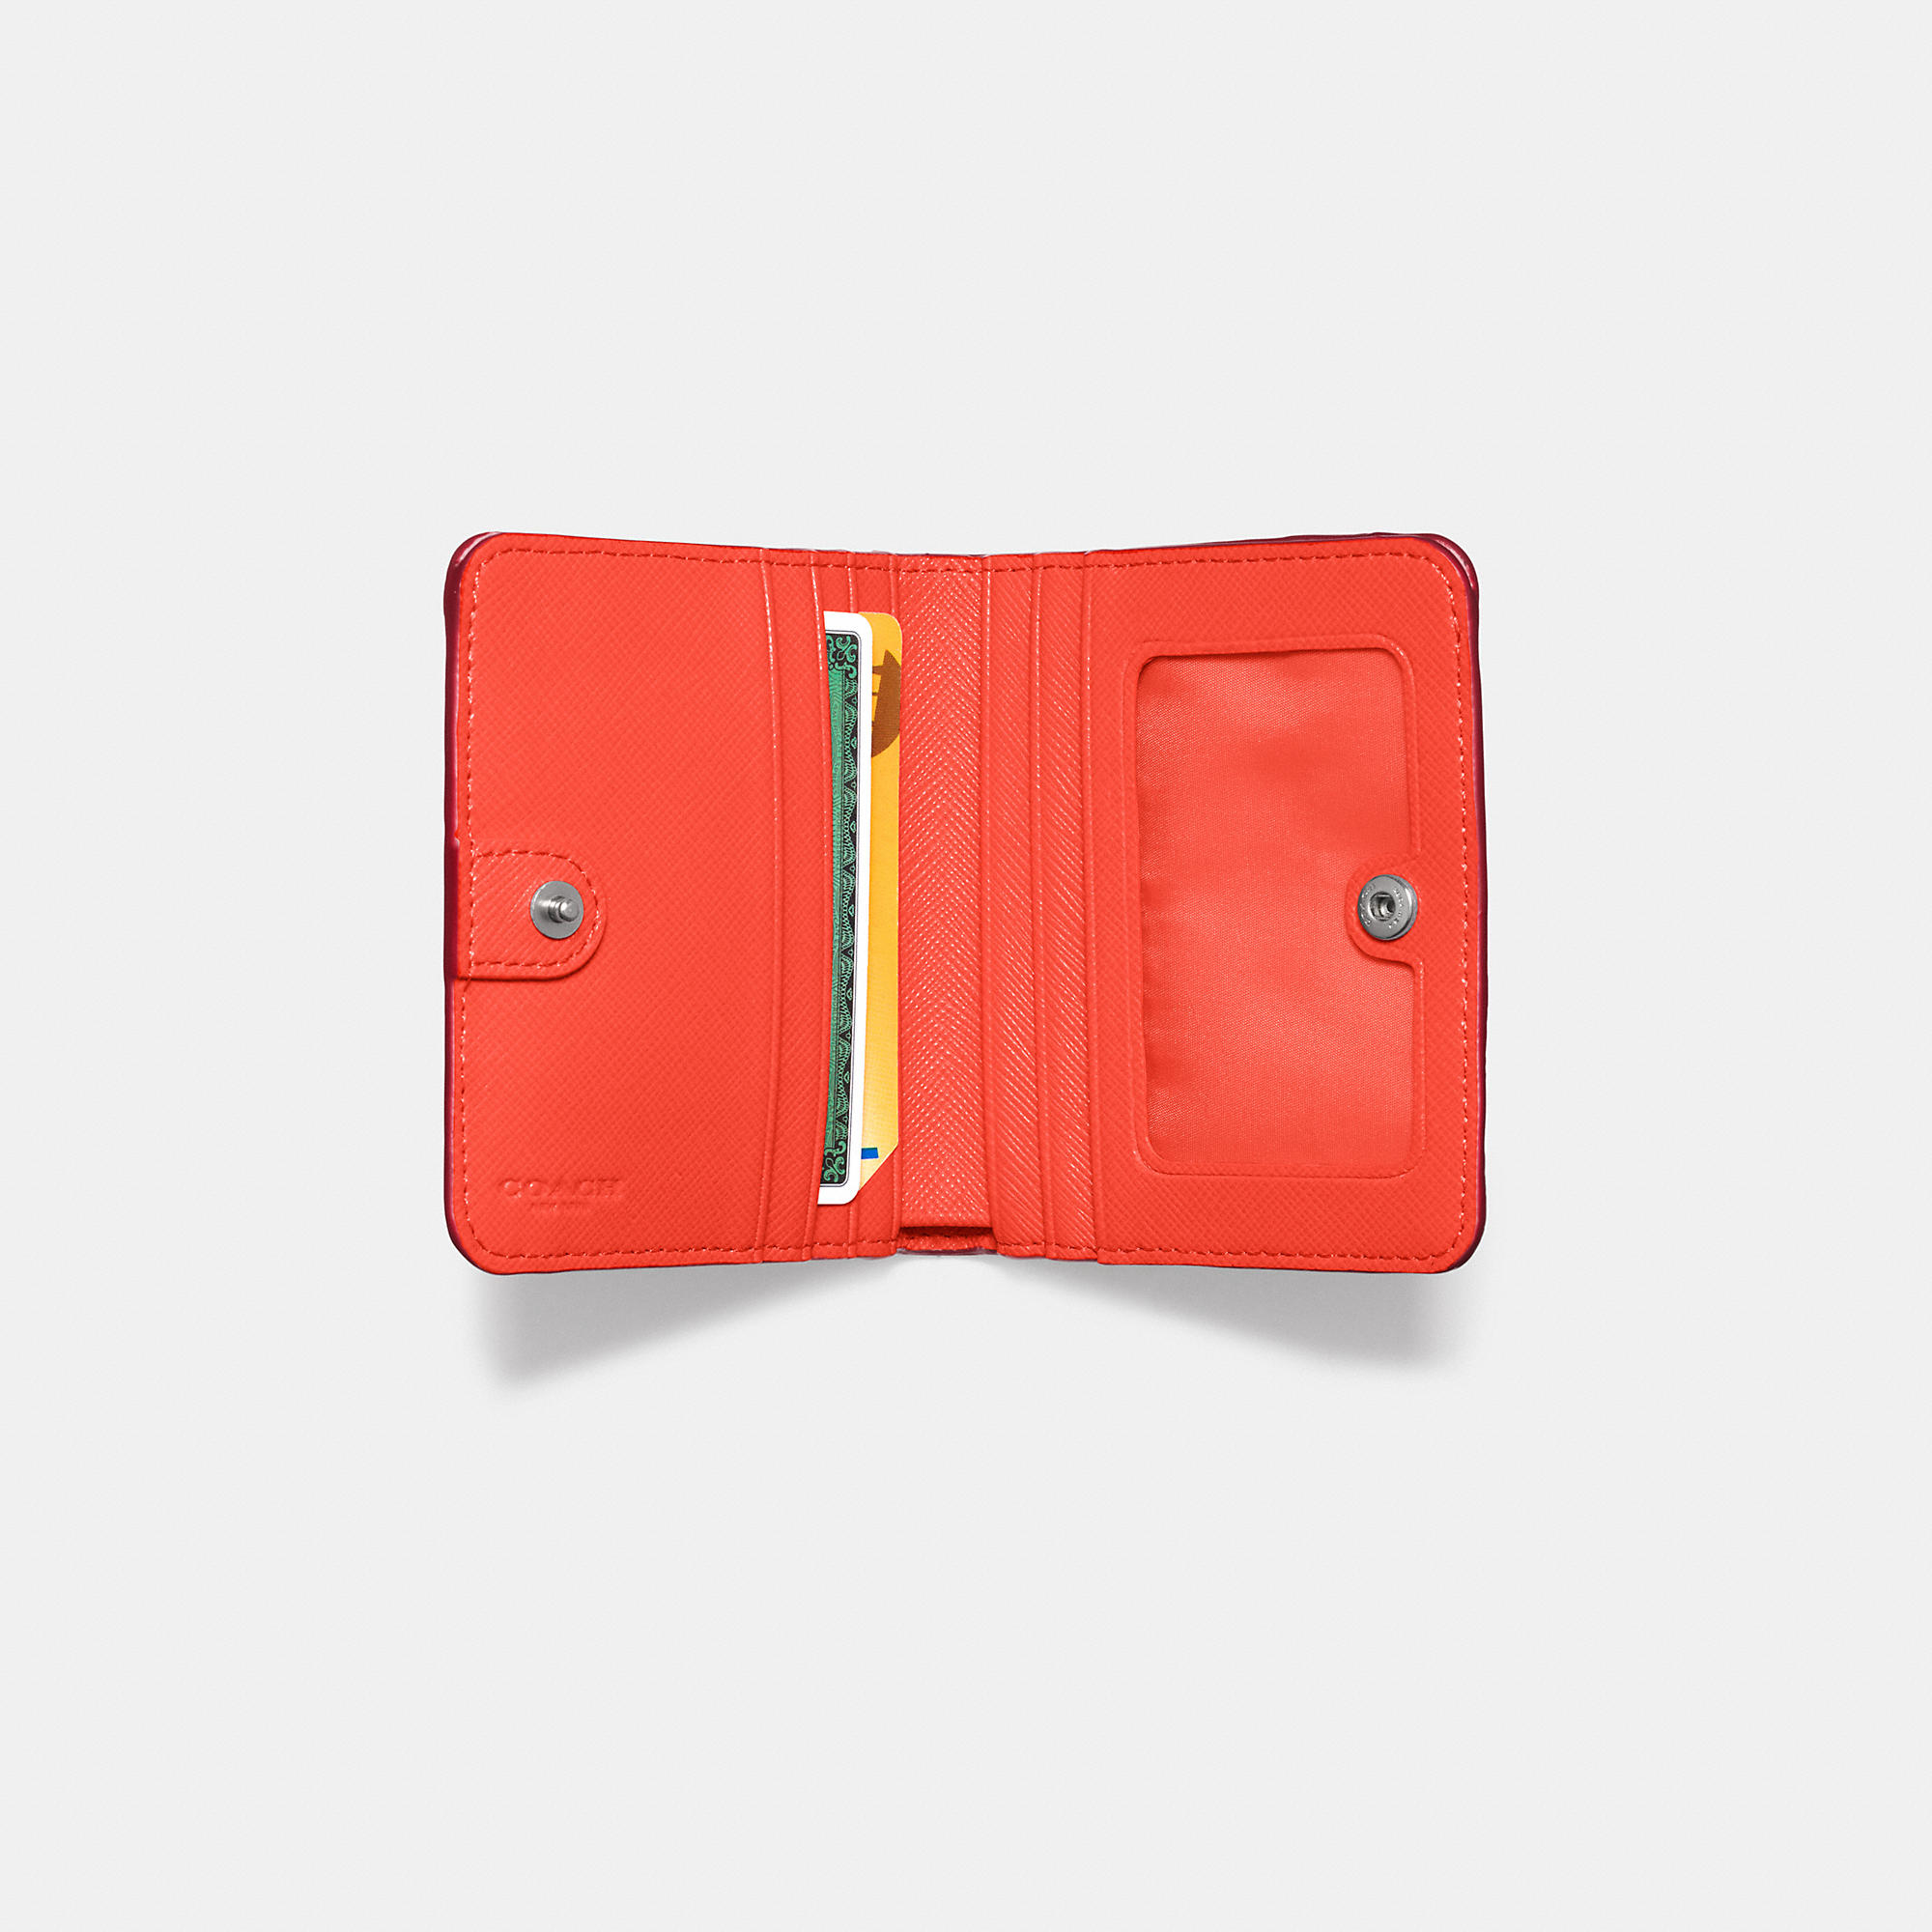 447eebc73c1ee ... canada lyst coach small wallet in colorblock leather in red a2e66 5976b